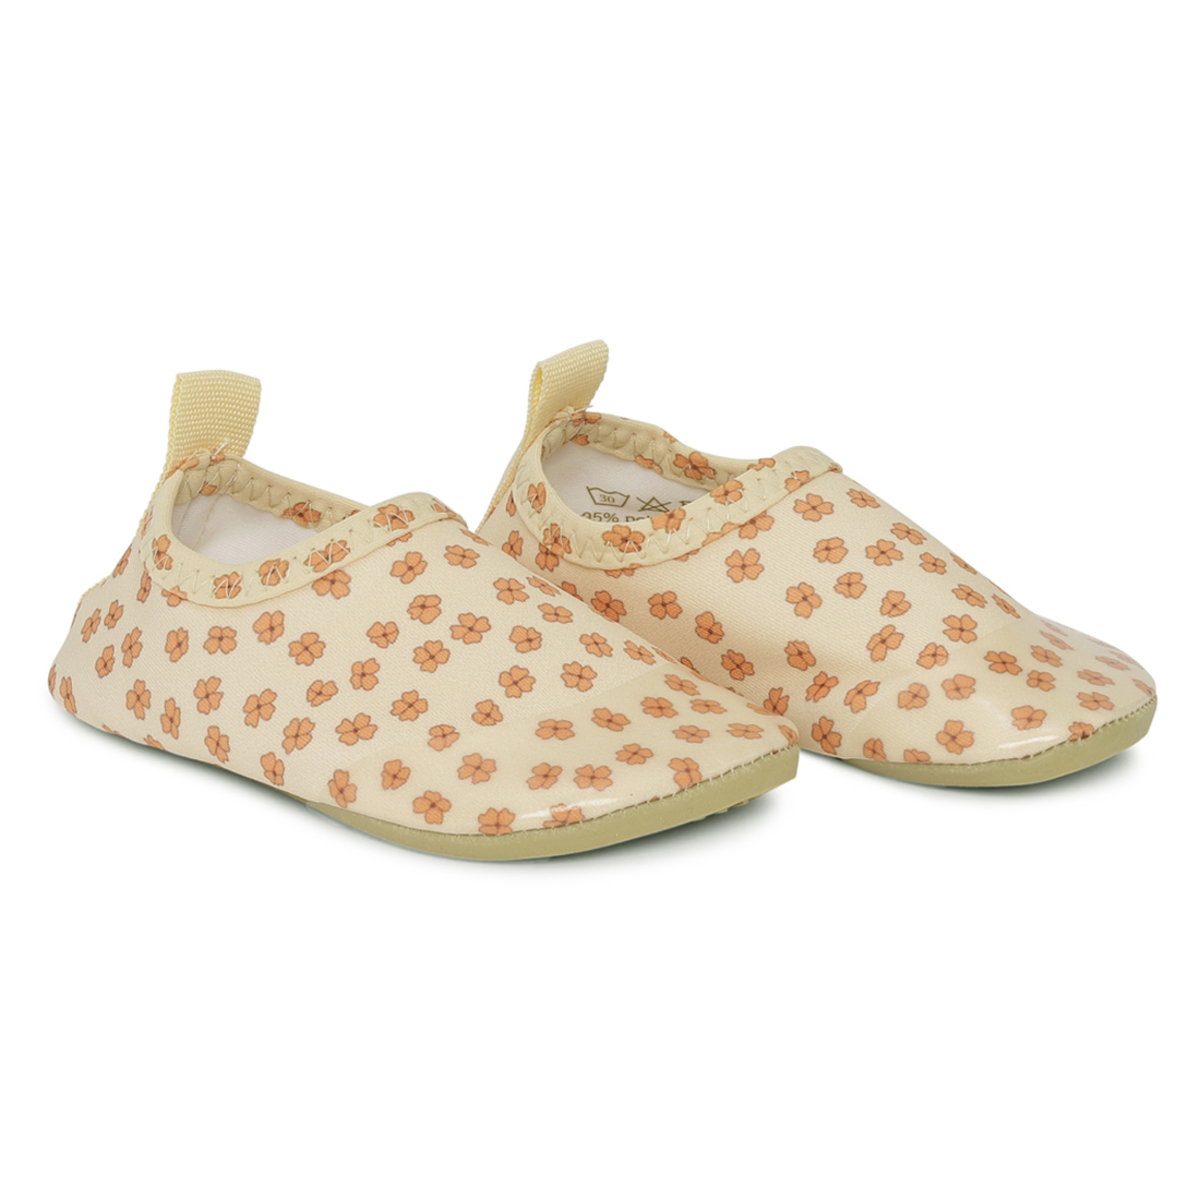 Chaussons & Chaussures Chaussures d'Eau Aster Buttercup Orange - 24/25 Chaussures d'Eau Aster Buttercup Orange - 24/25